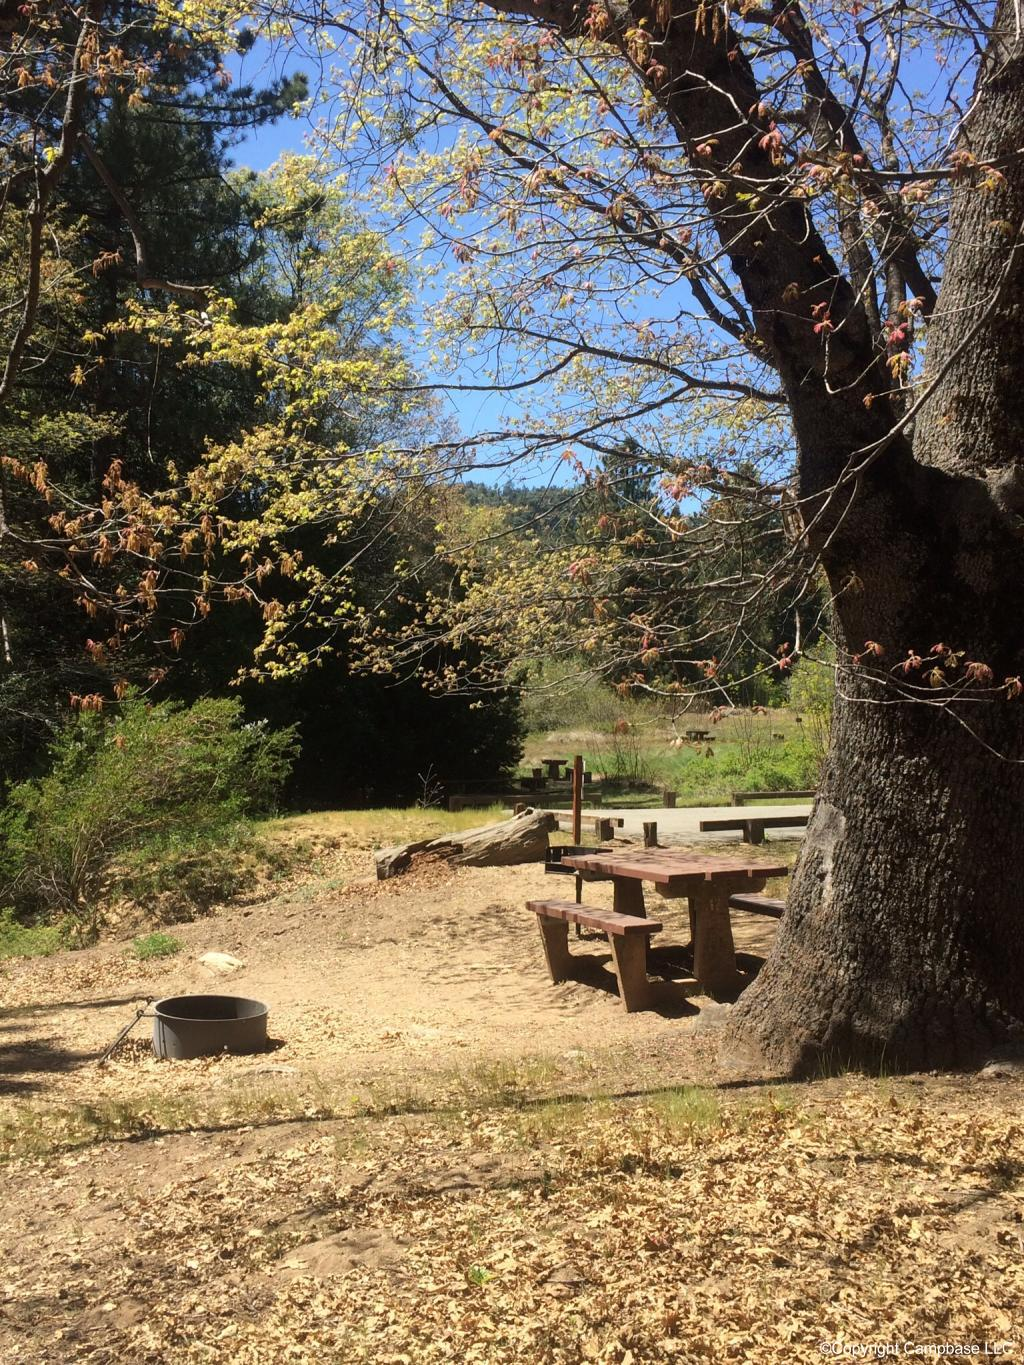 Observatory Campground Palomar Mountain California